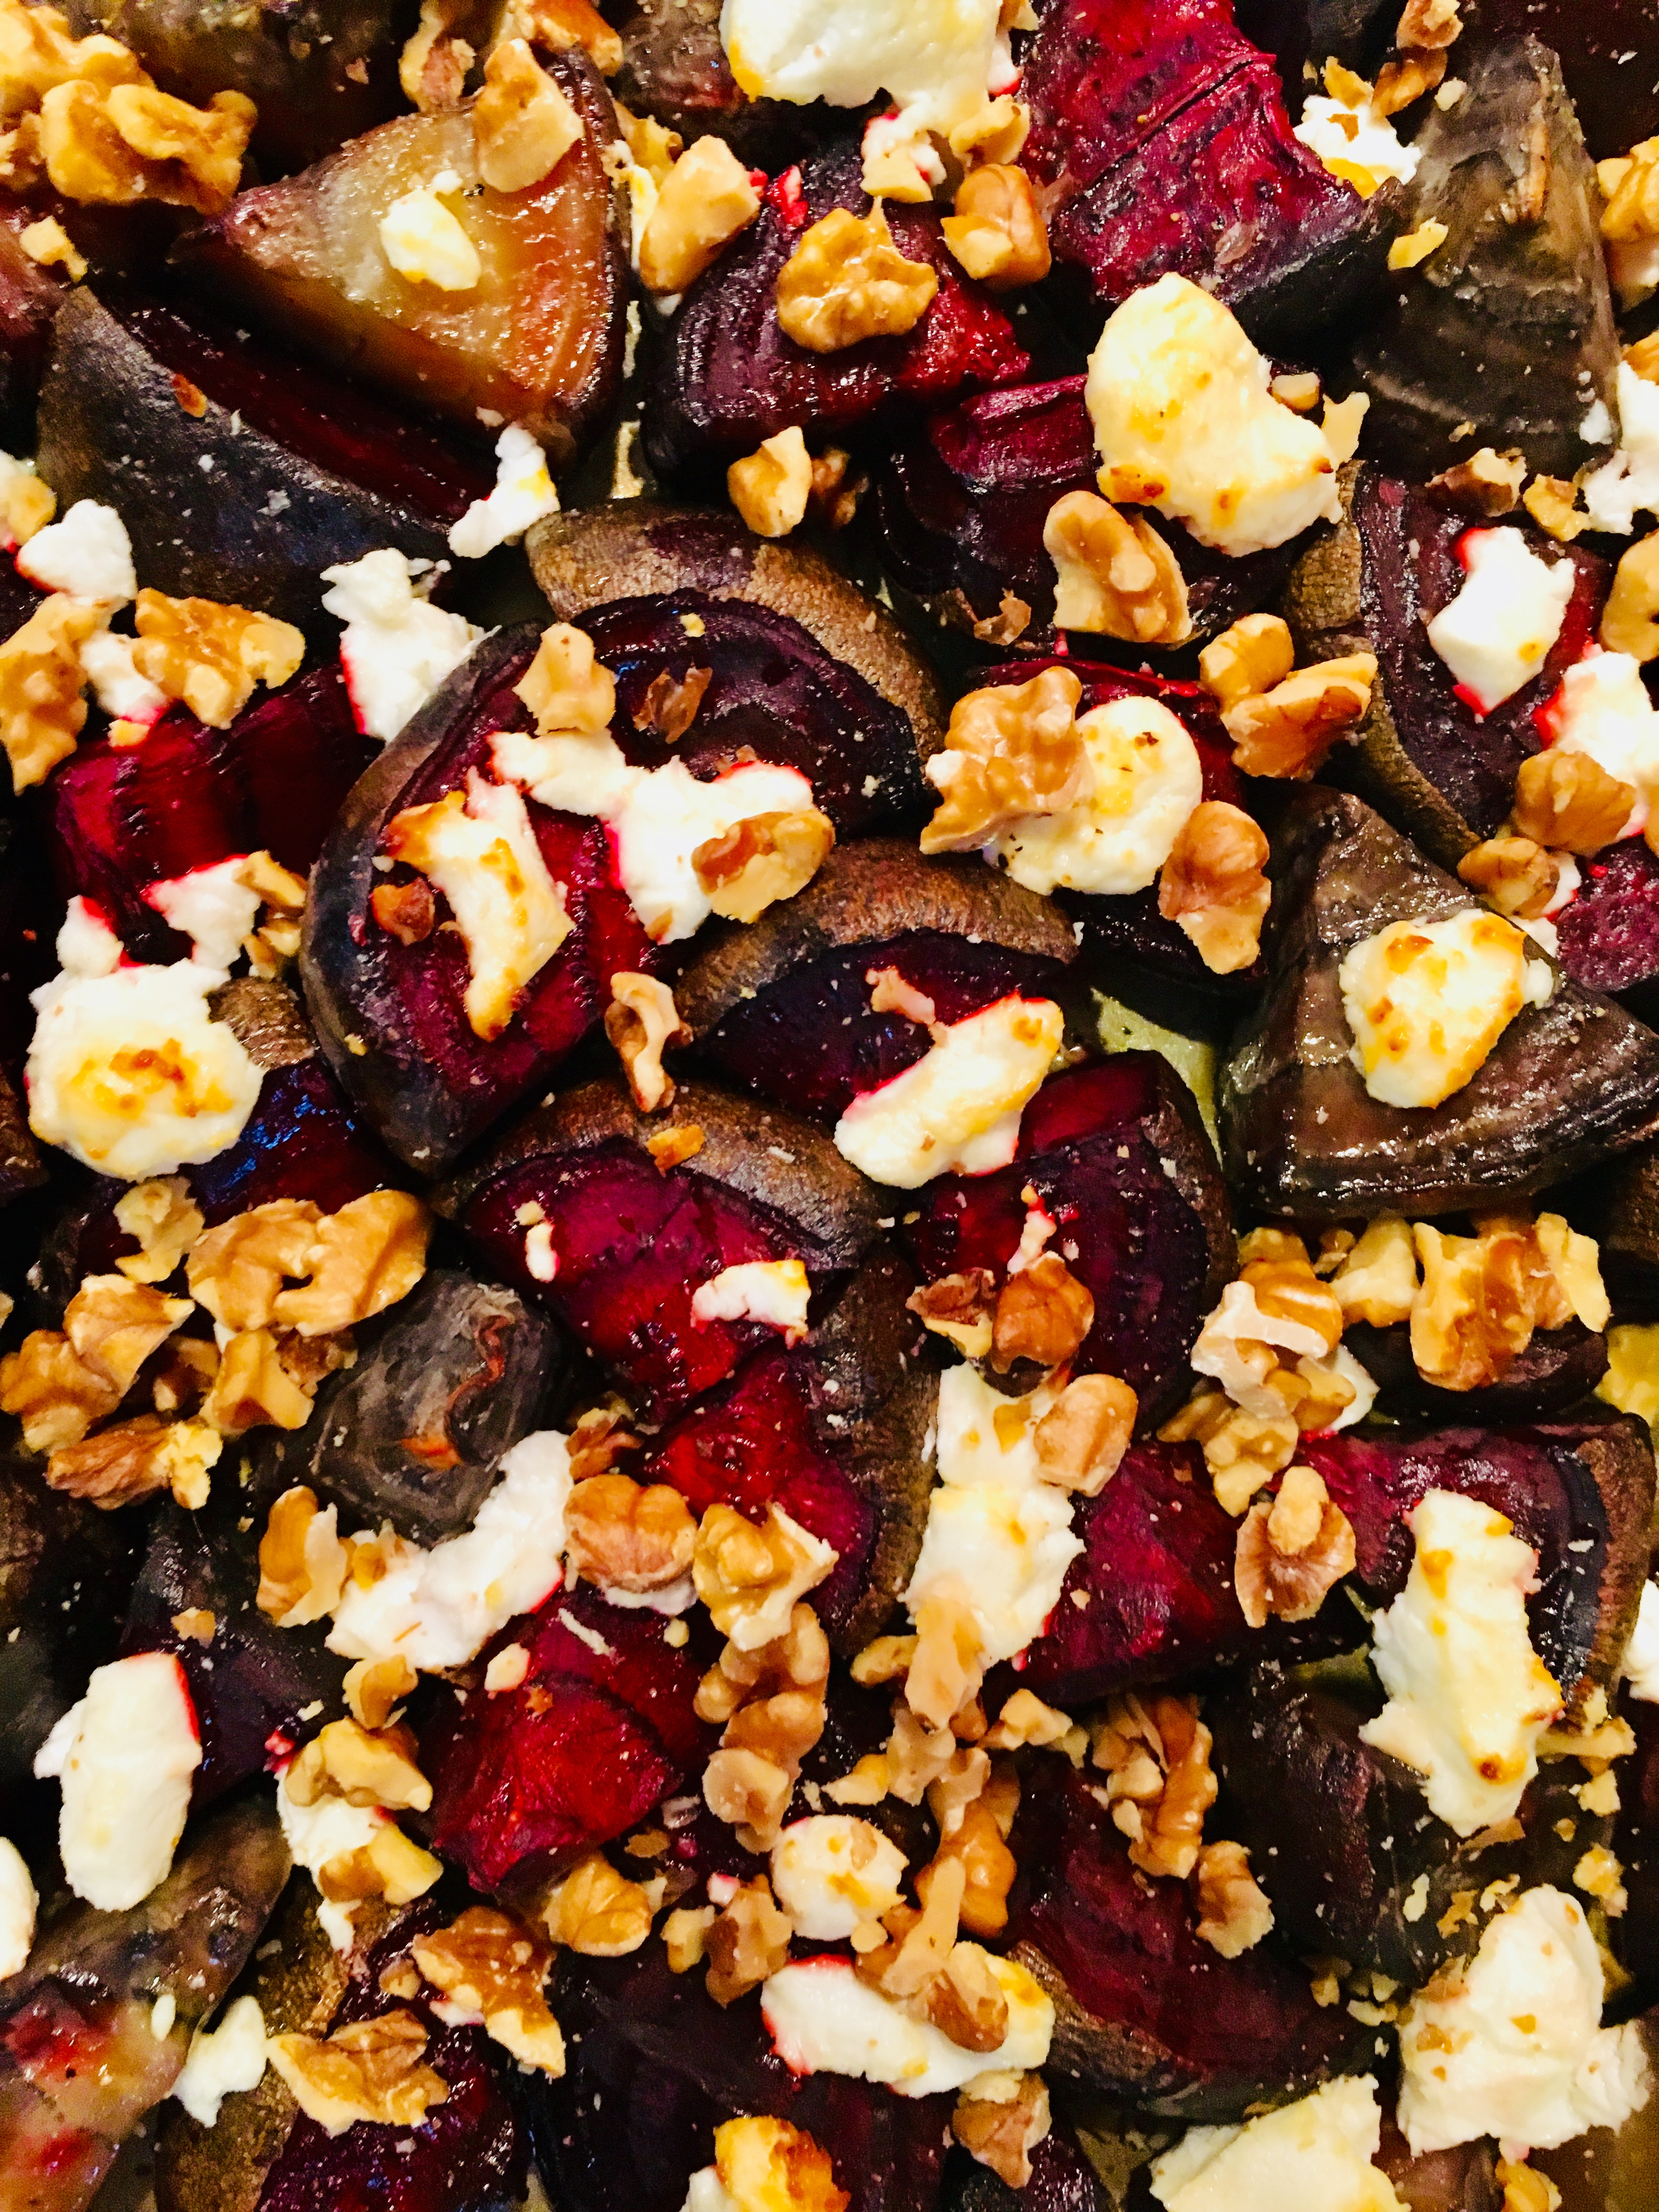 Roasted Beets with Goat Cheese and Walnuts CookingIsArt